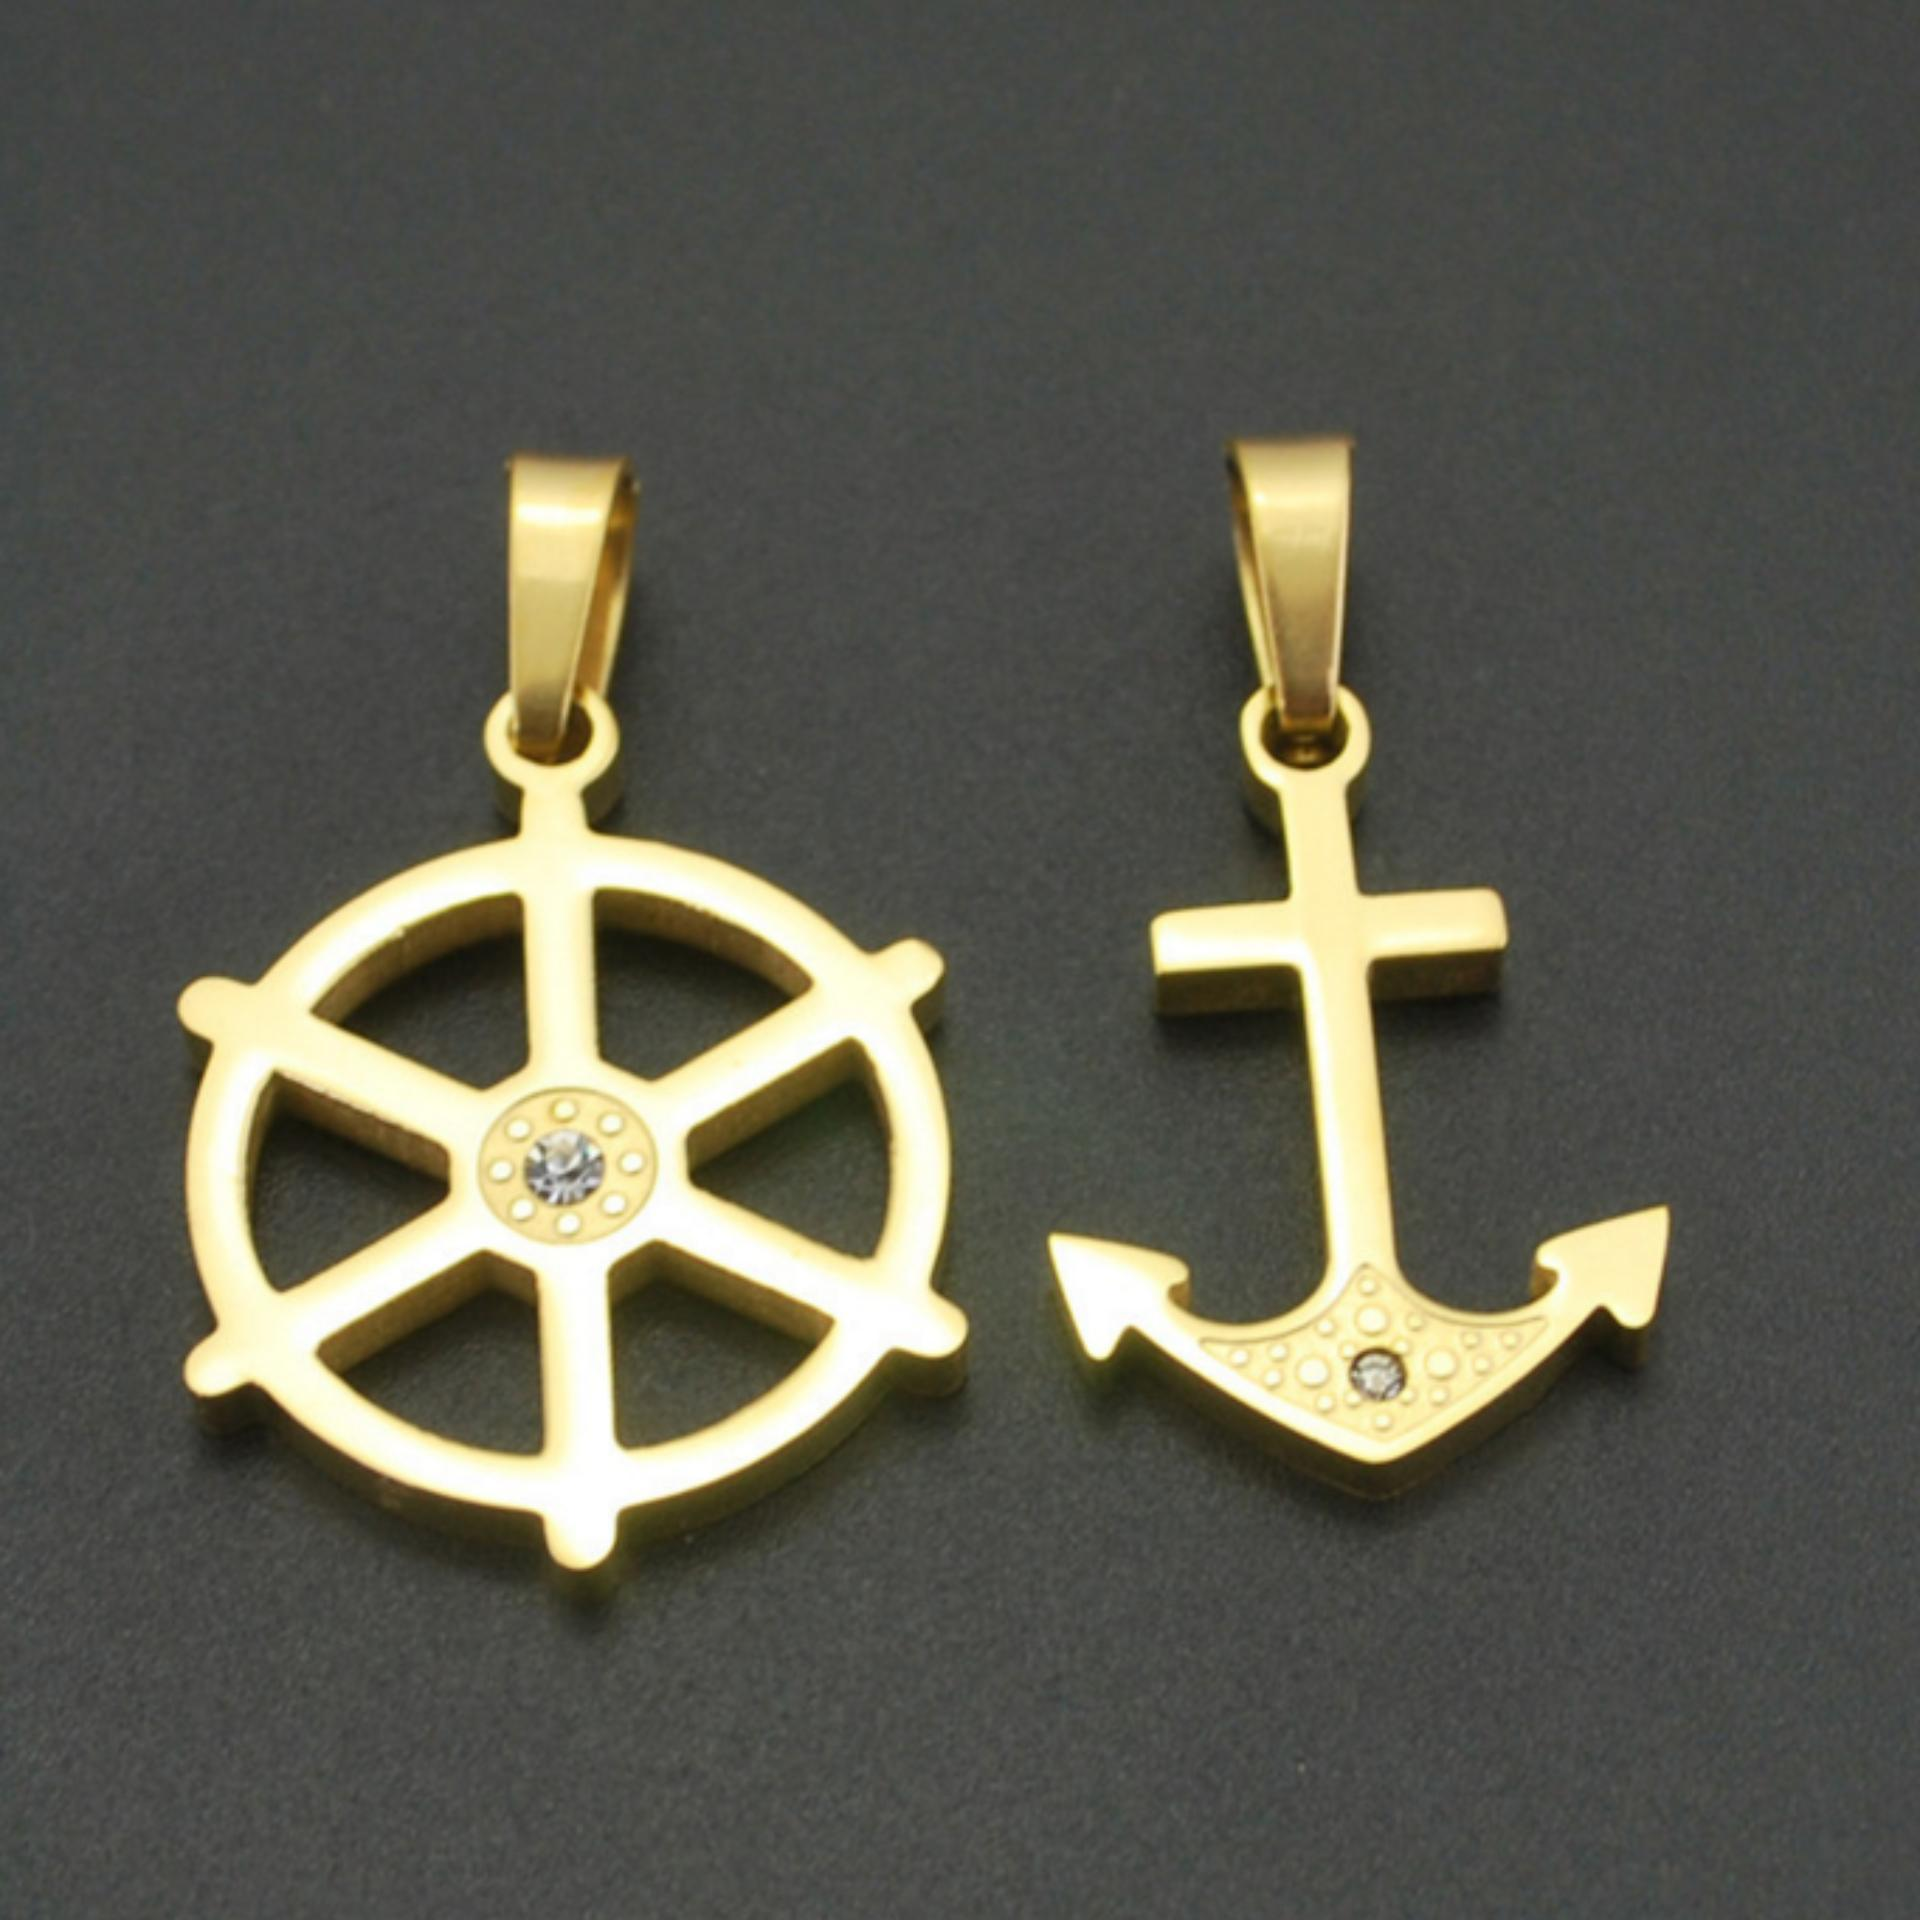 ... Boat Anchor Couples Necklaces Navy Style Accessories with TitaniumStainless Steel No Fade Lovers